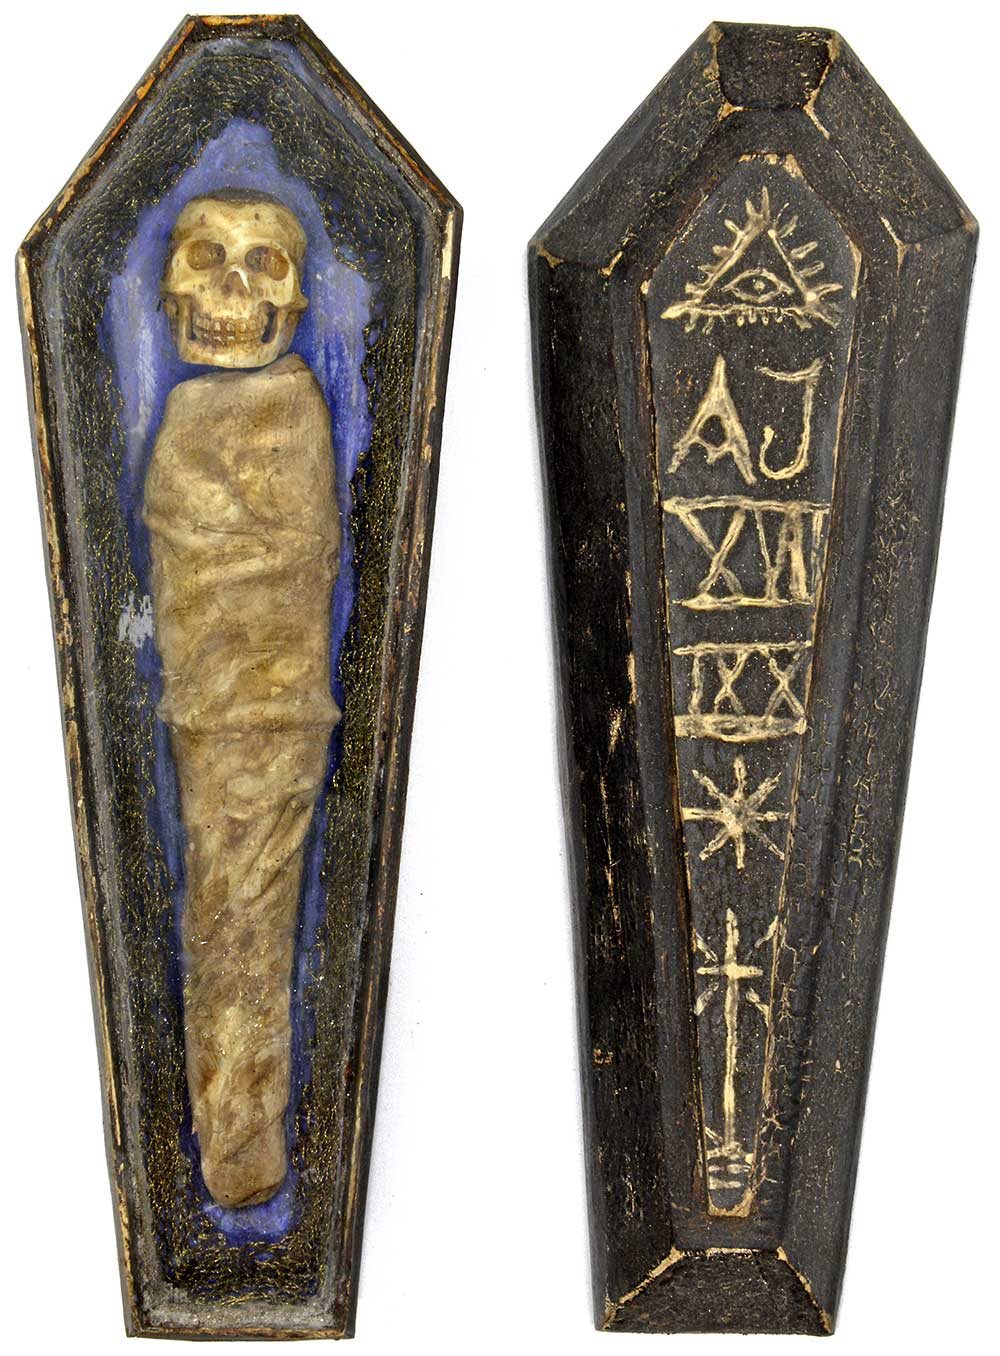 Todlein, german memento mori, antique skeleton in coffin